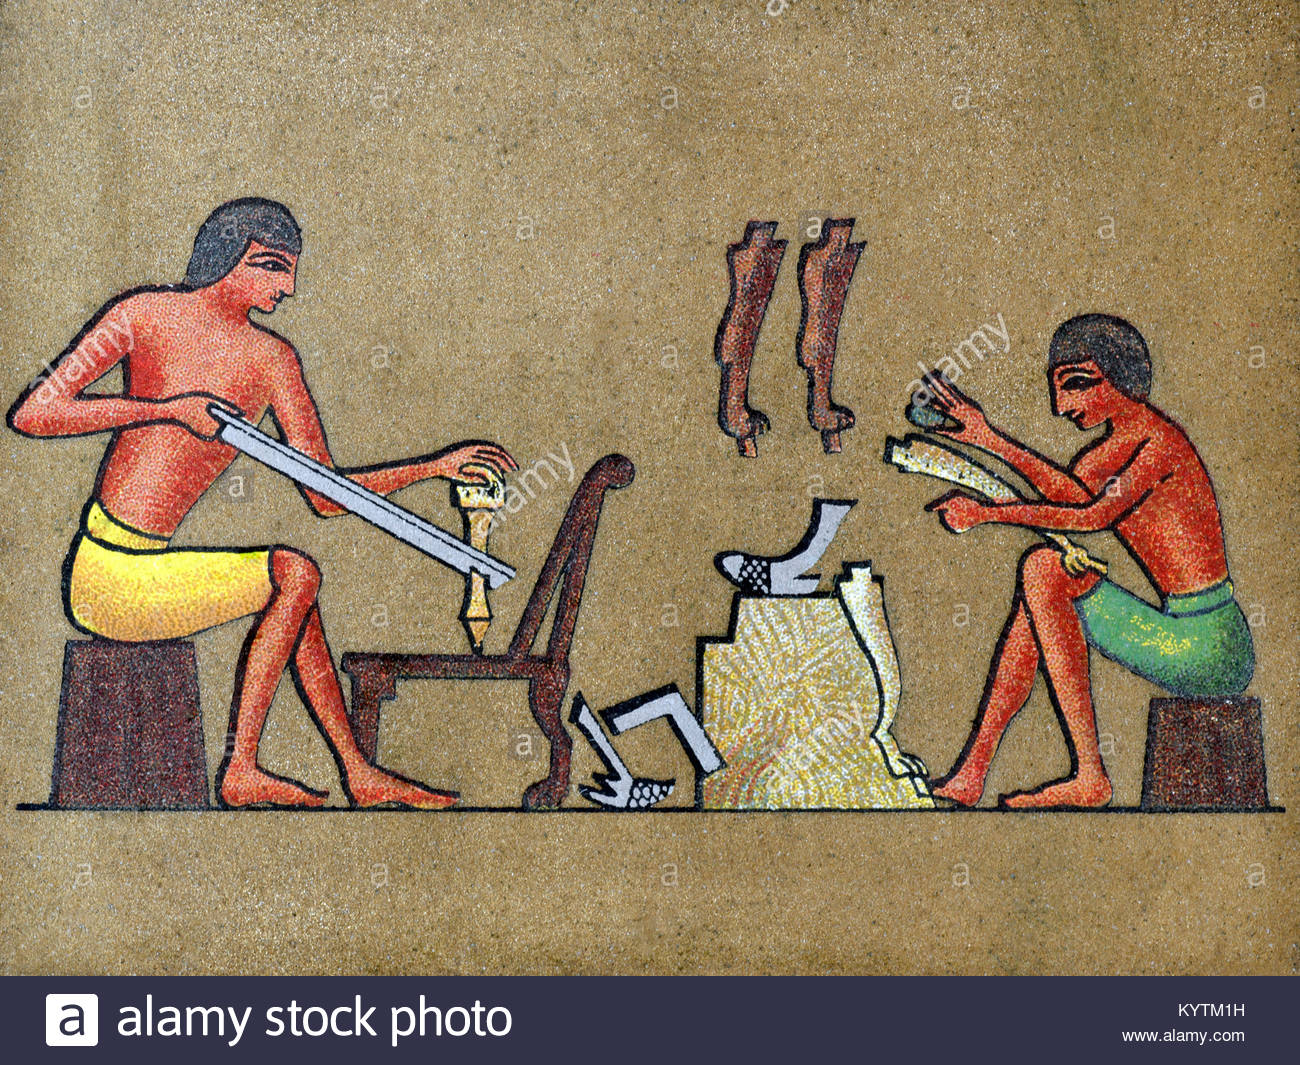 Depiction of ancient Egyptians making furniture - Stock Image